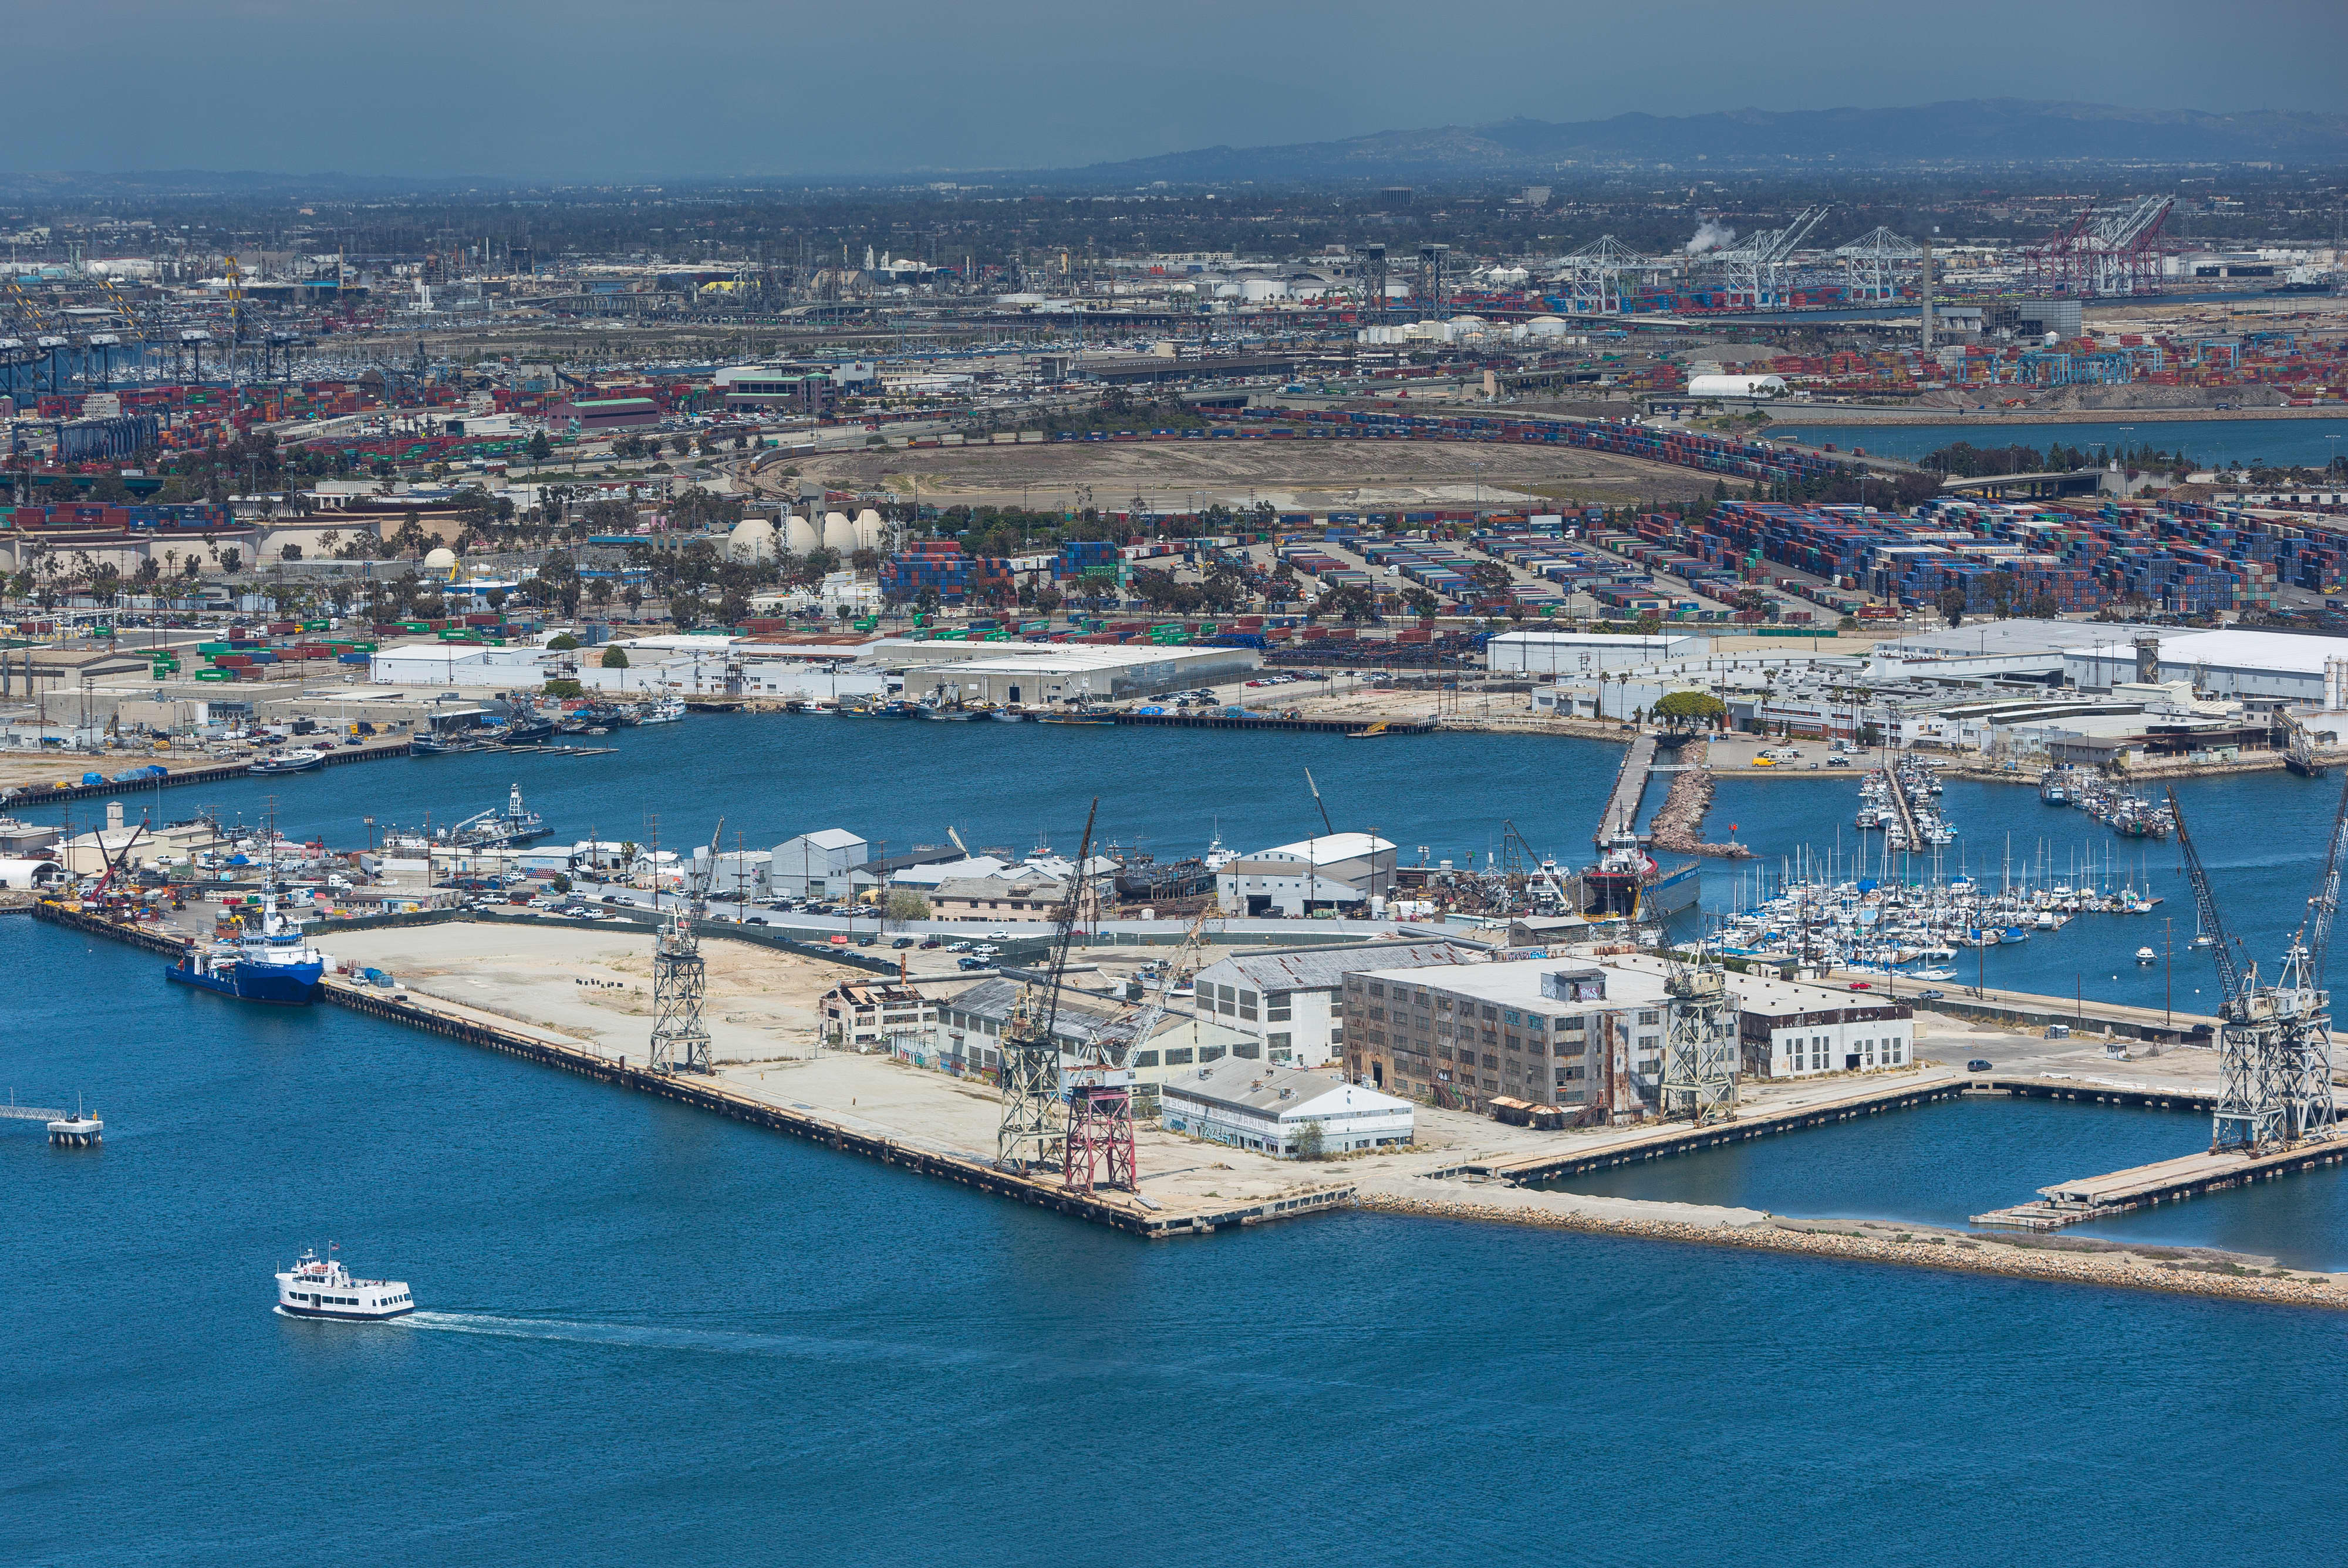 SpaceX restarts negotiations to build its Starship rockets in the Port of Los Angeles